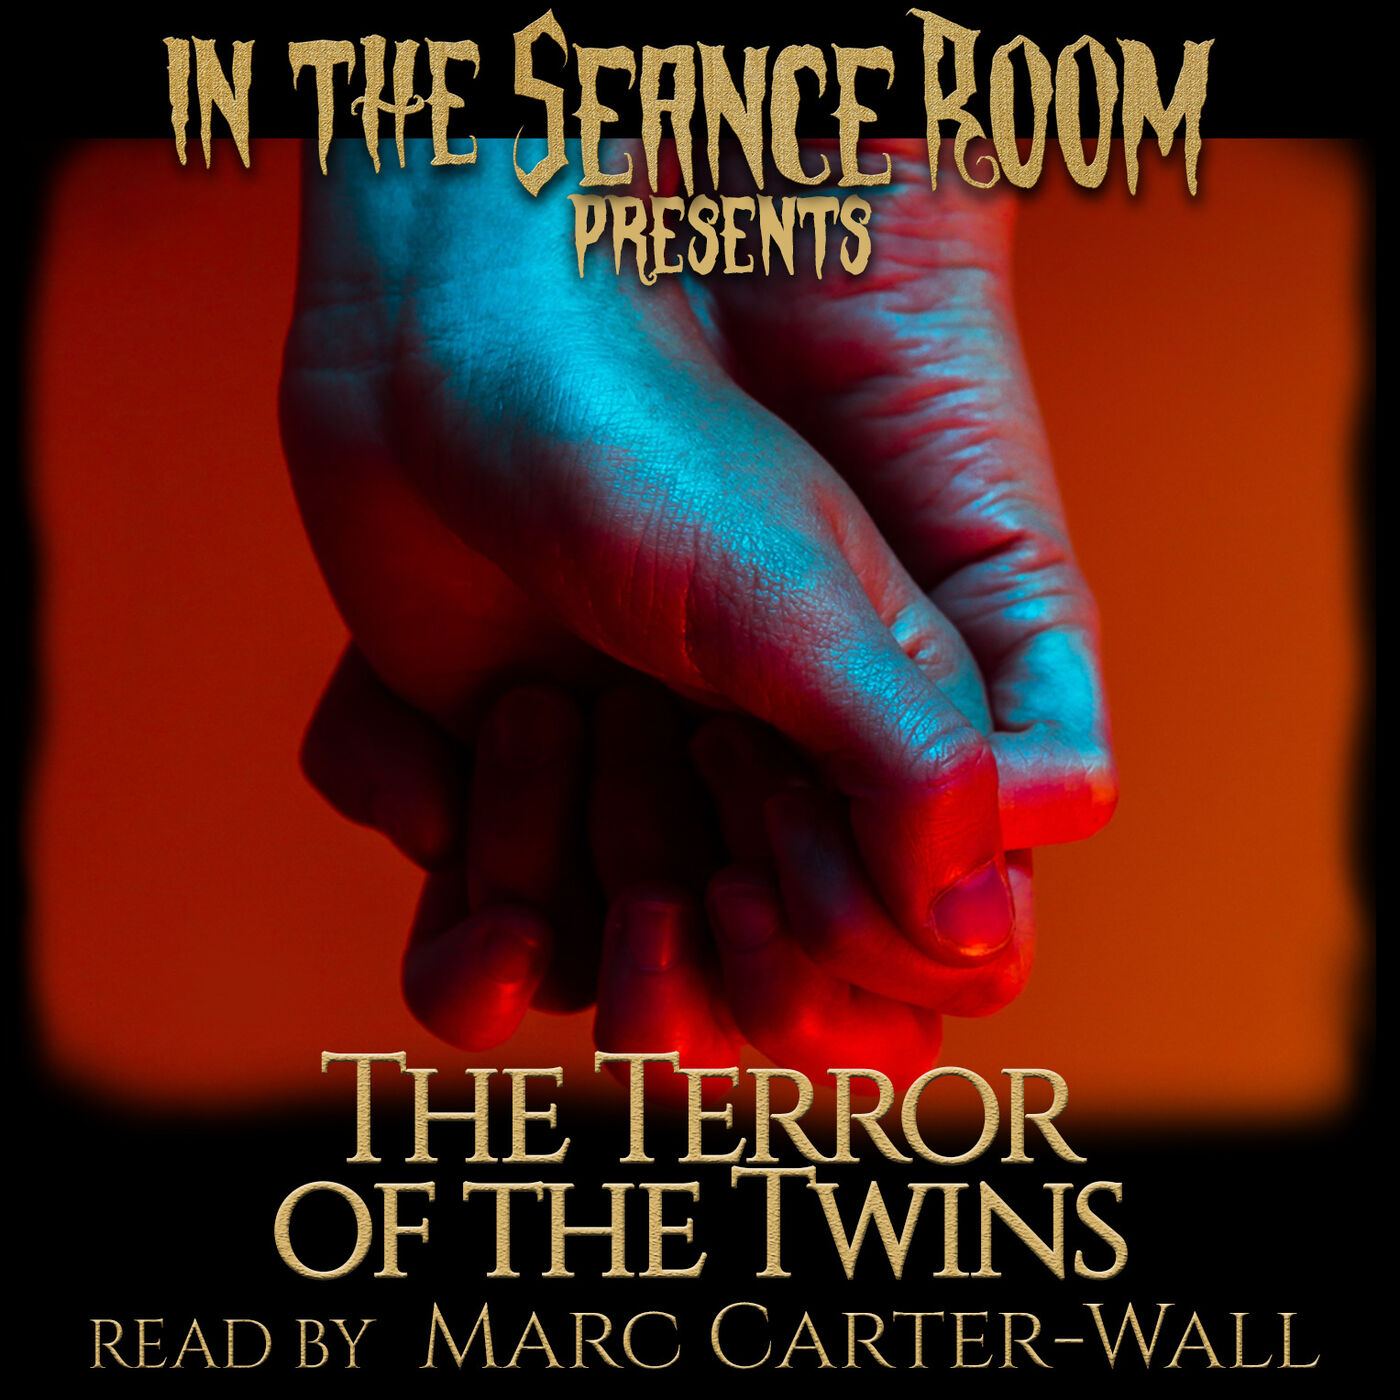 The Terror of the Twins